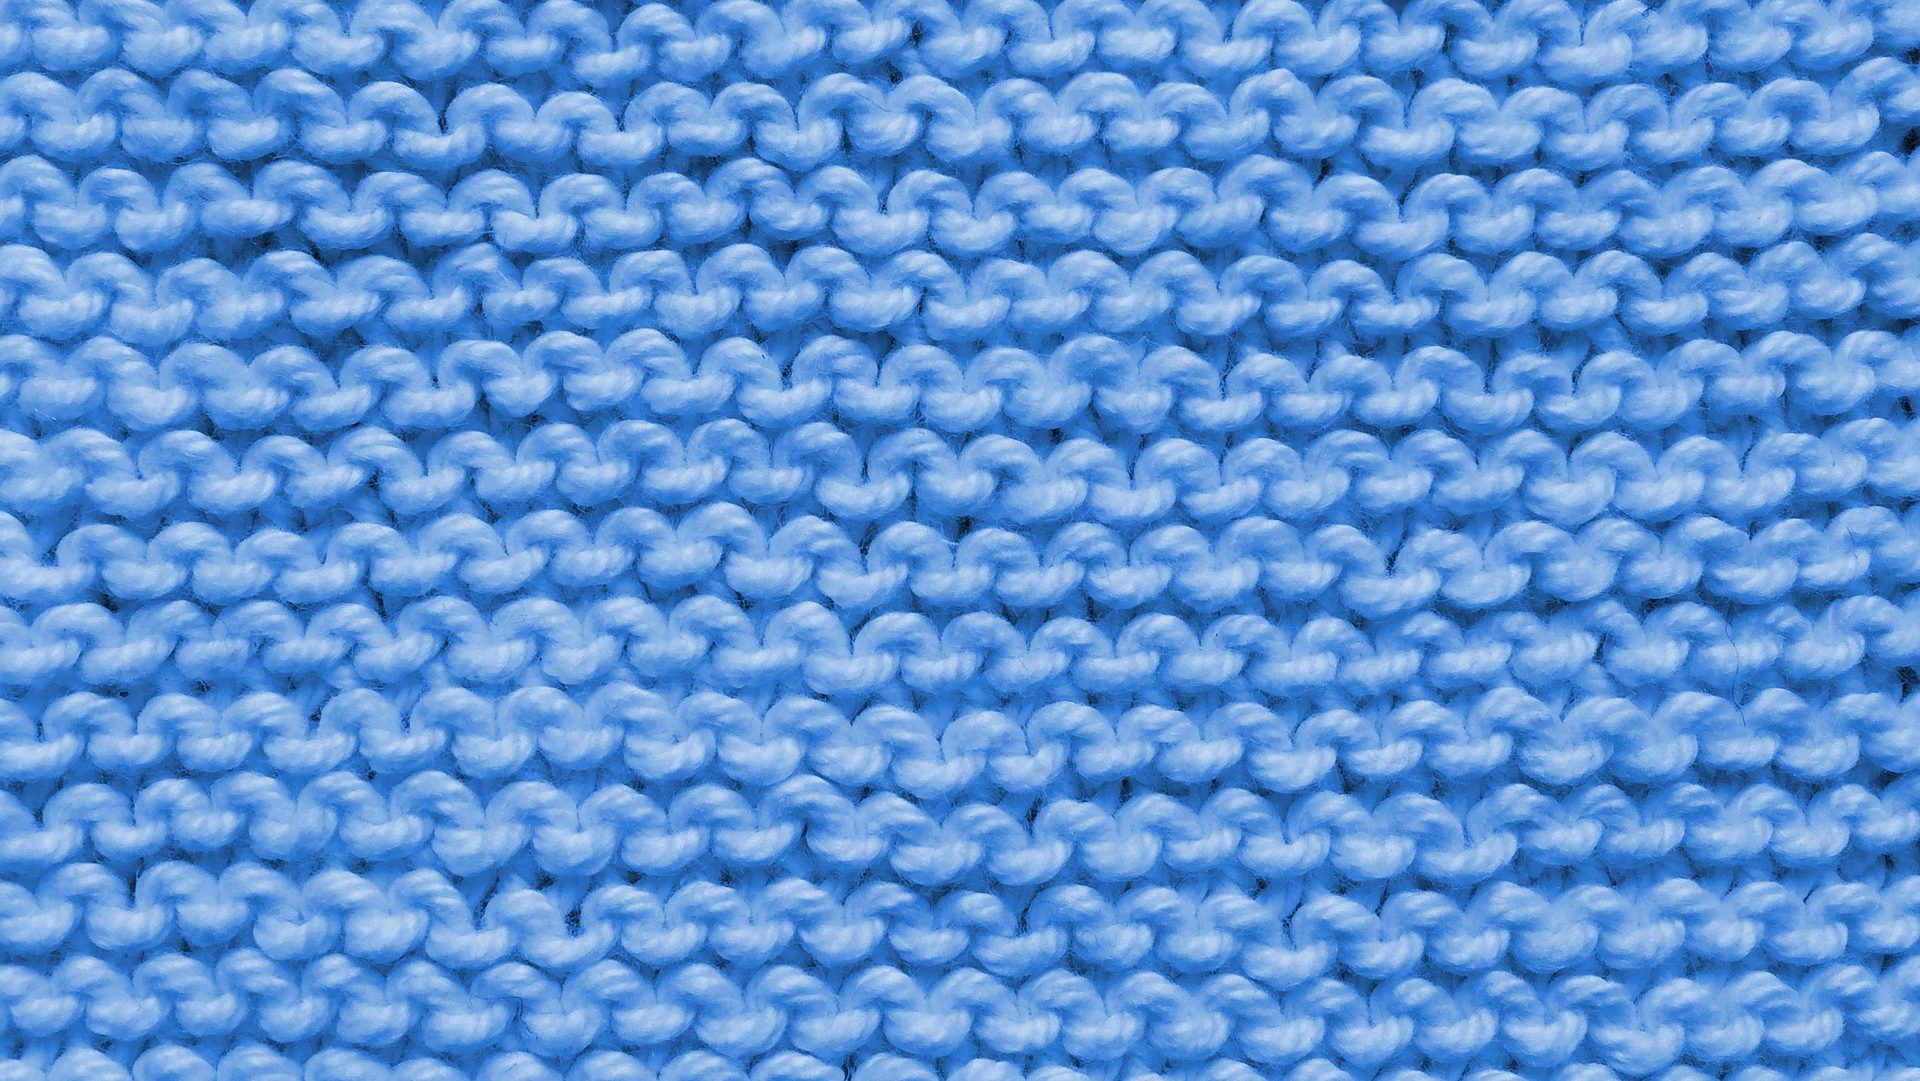 the knit stitch pattern for beginner knitters